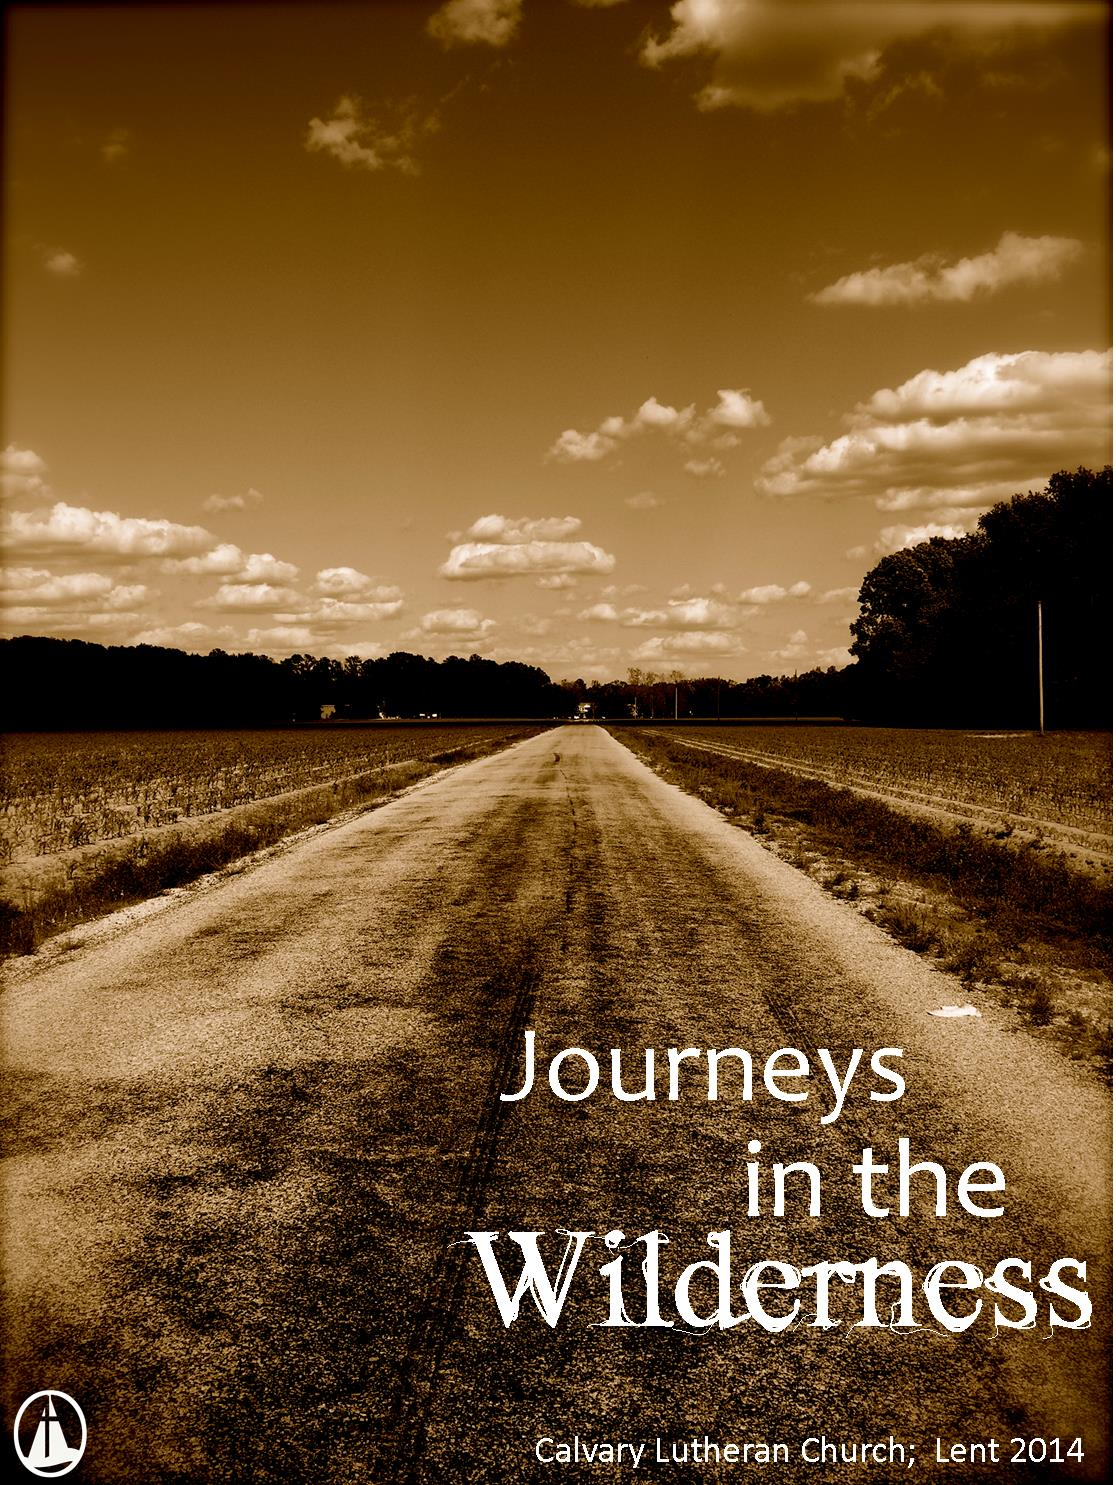 journeys in the wilderness 2014